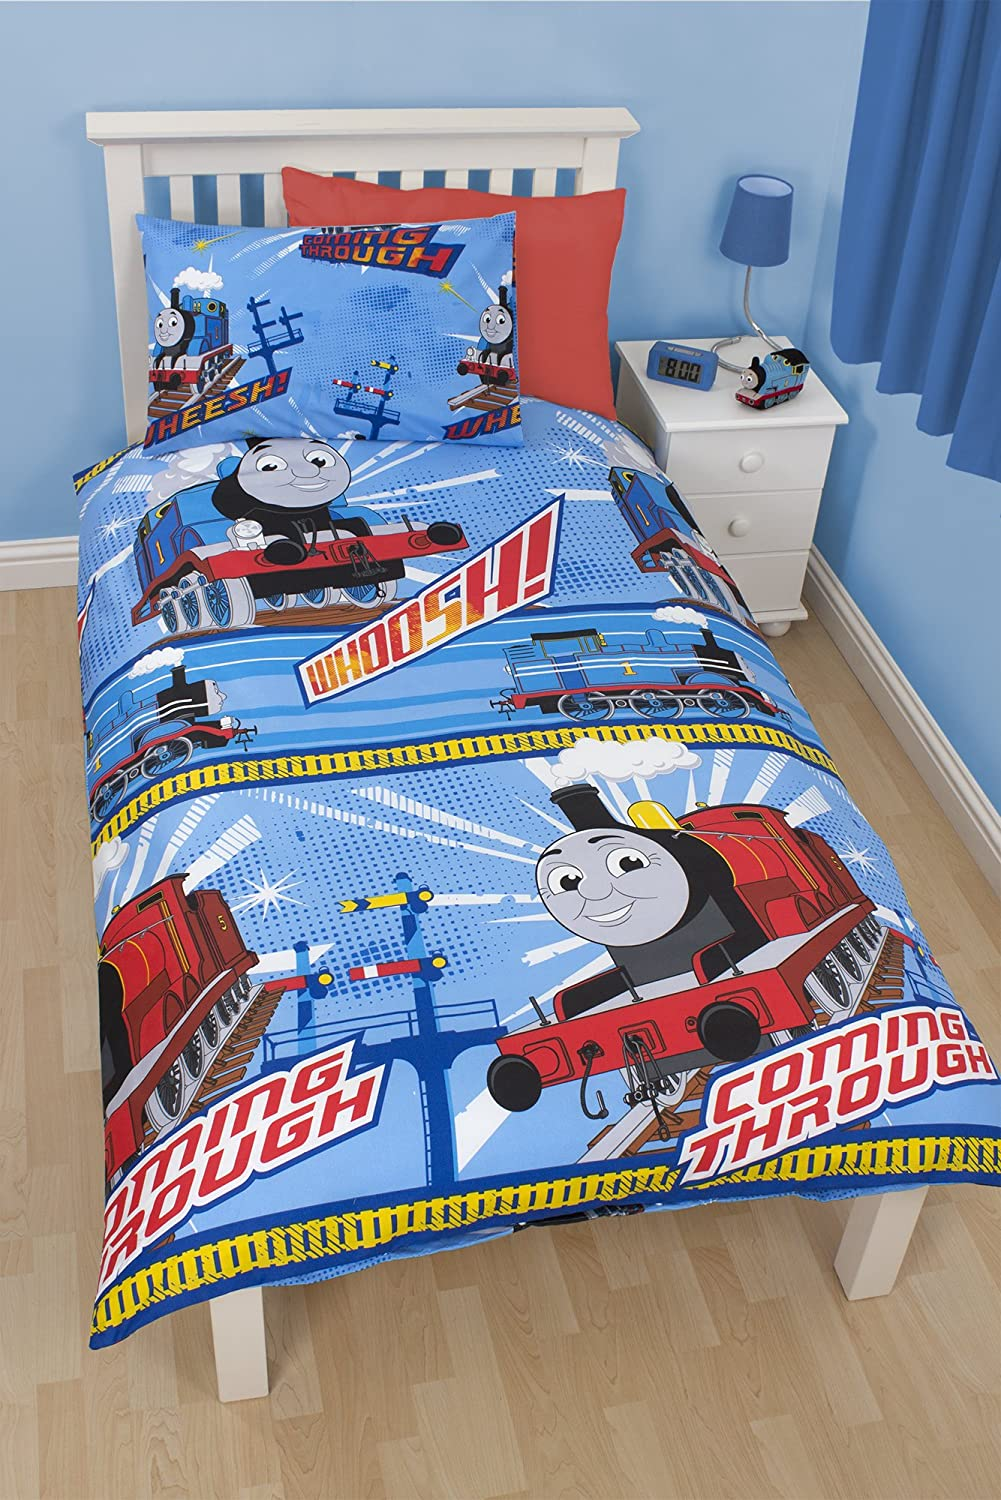 Thomas The Tank Wheesh Single Rotary Duvet Set  Amazon co uk  Kitchen   Home. Thomas The Tank Wheesh Single Rotary Duvet Set  Amazon co uk